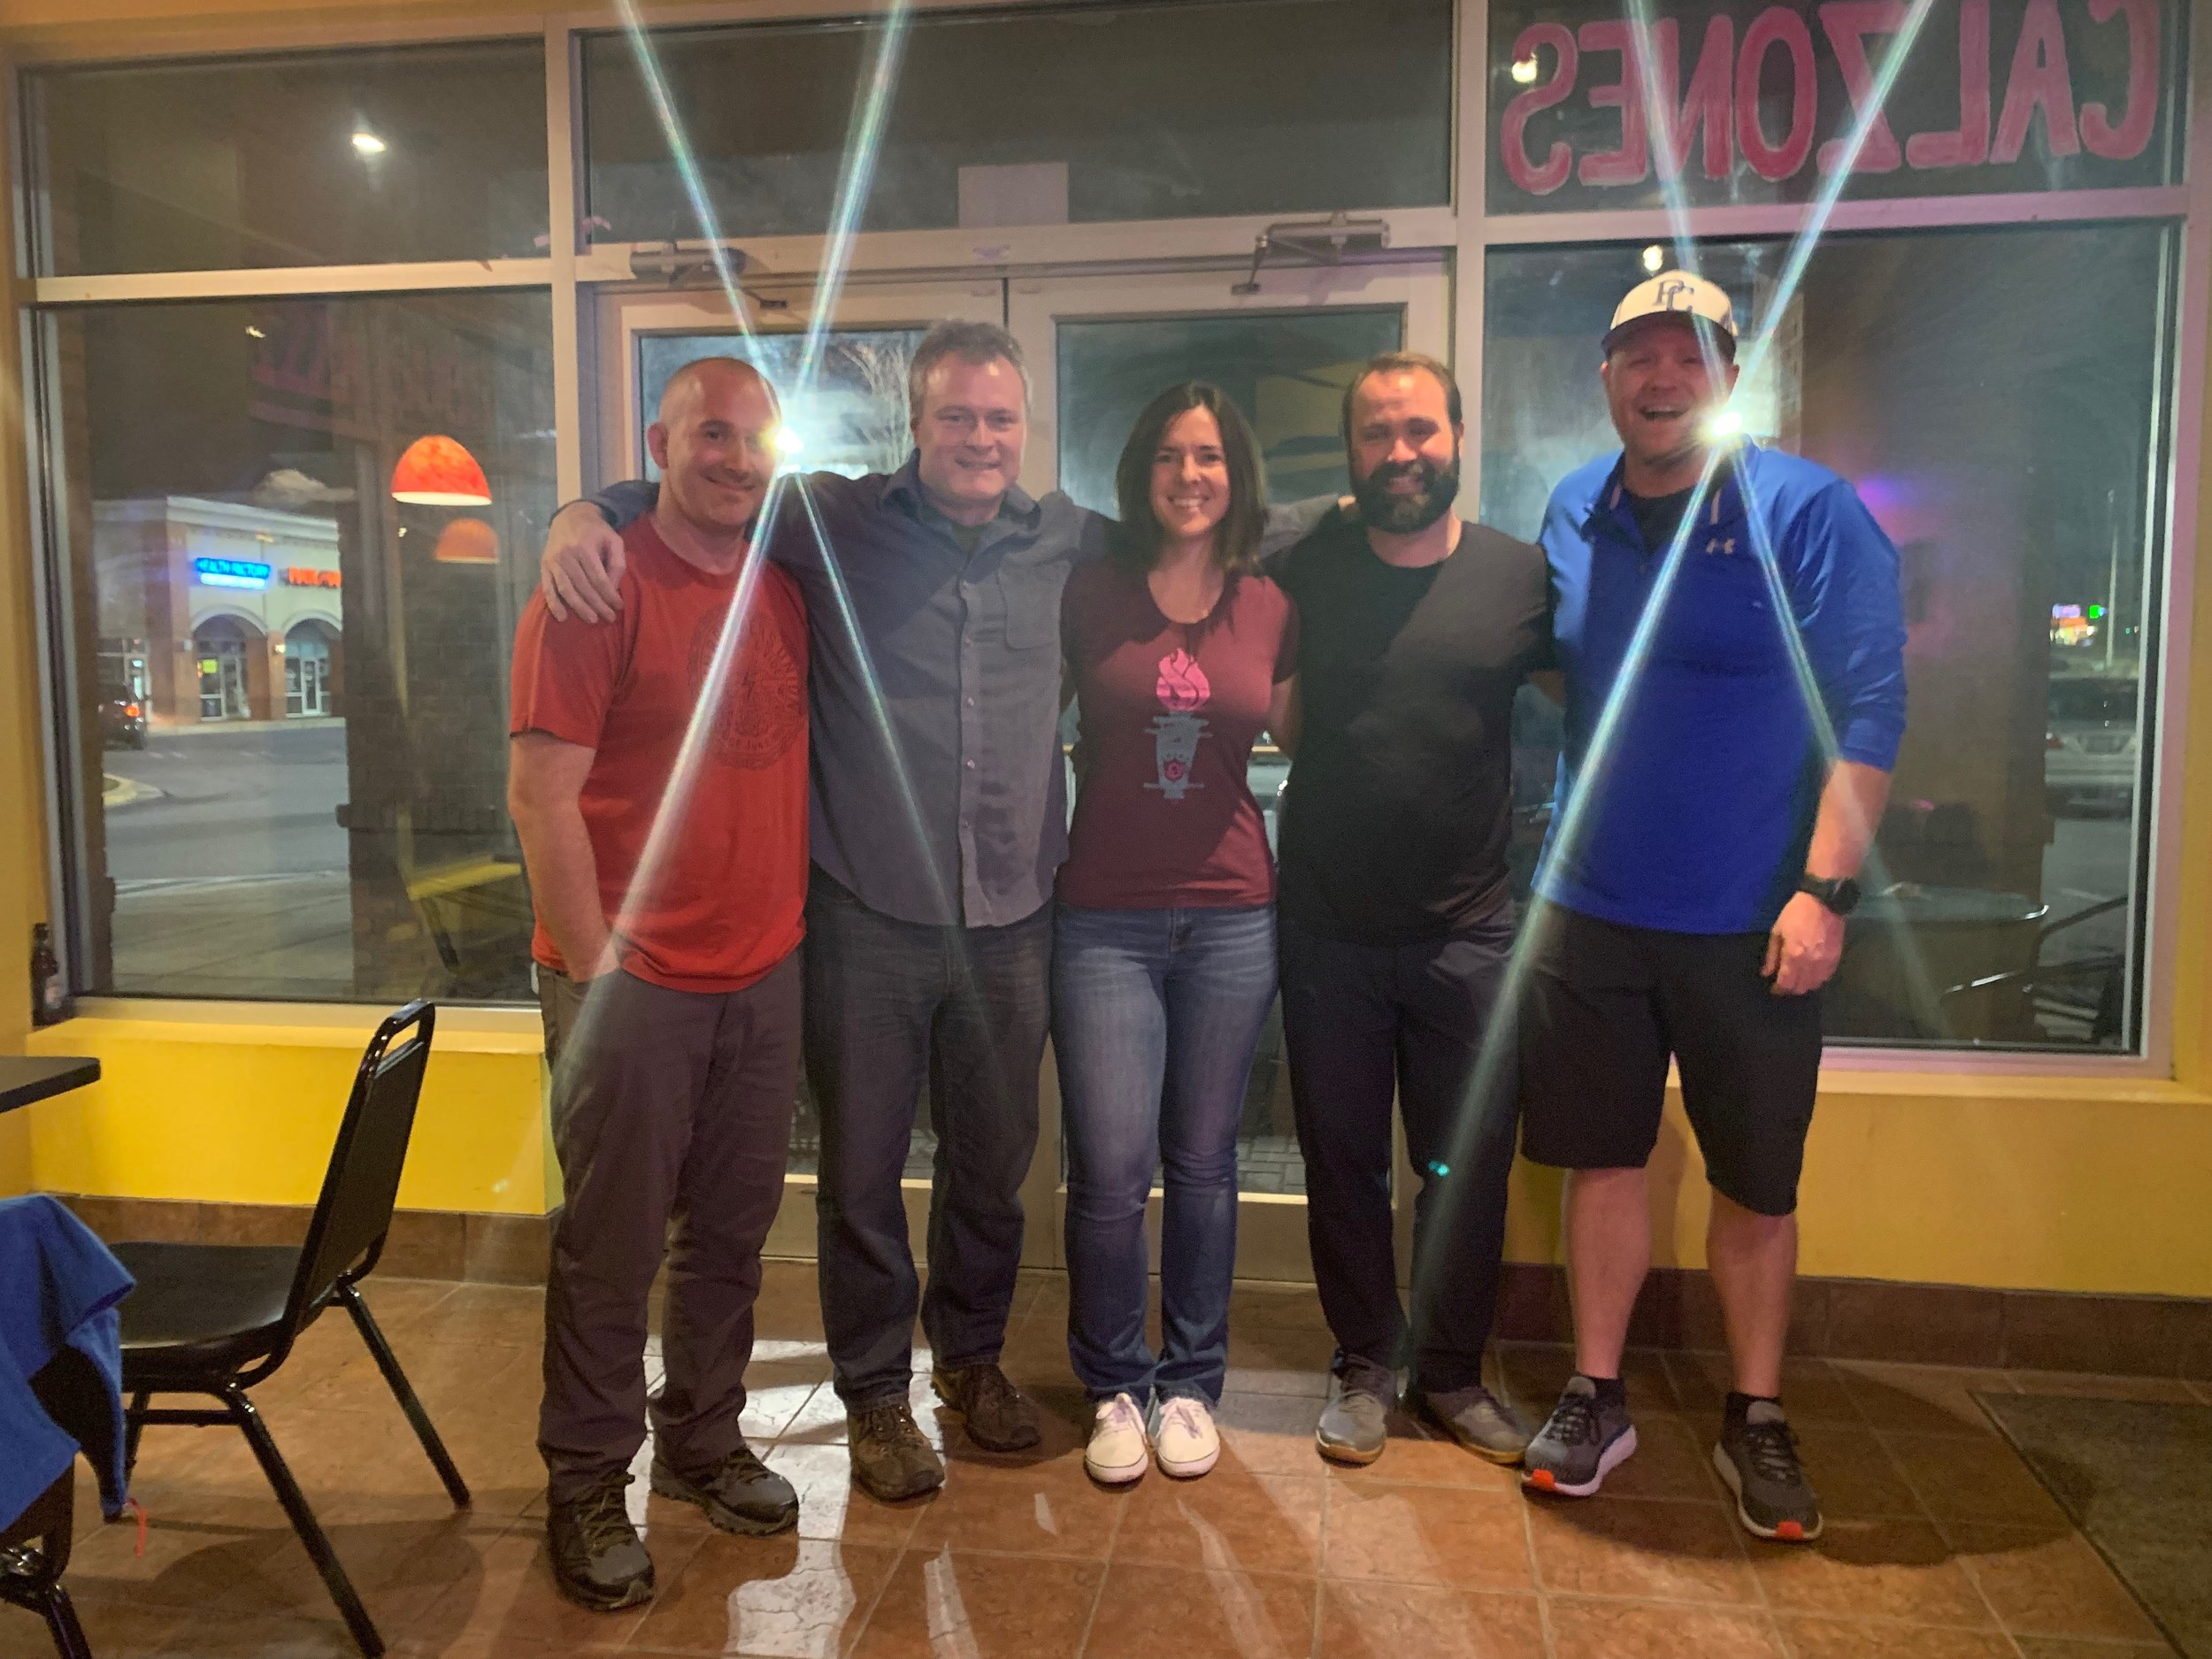 Board of Directors at March 2019 Member meeting (Left to Right: Josh Camp, Chuck Kirk, Lindsey Prell, Zak Prell, and Jamie Youngblood)